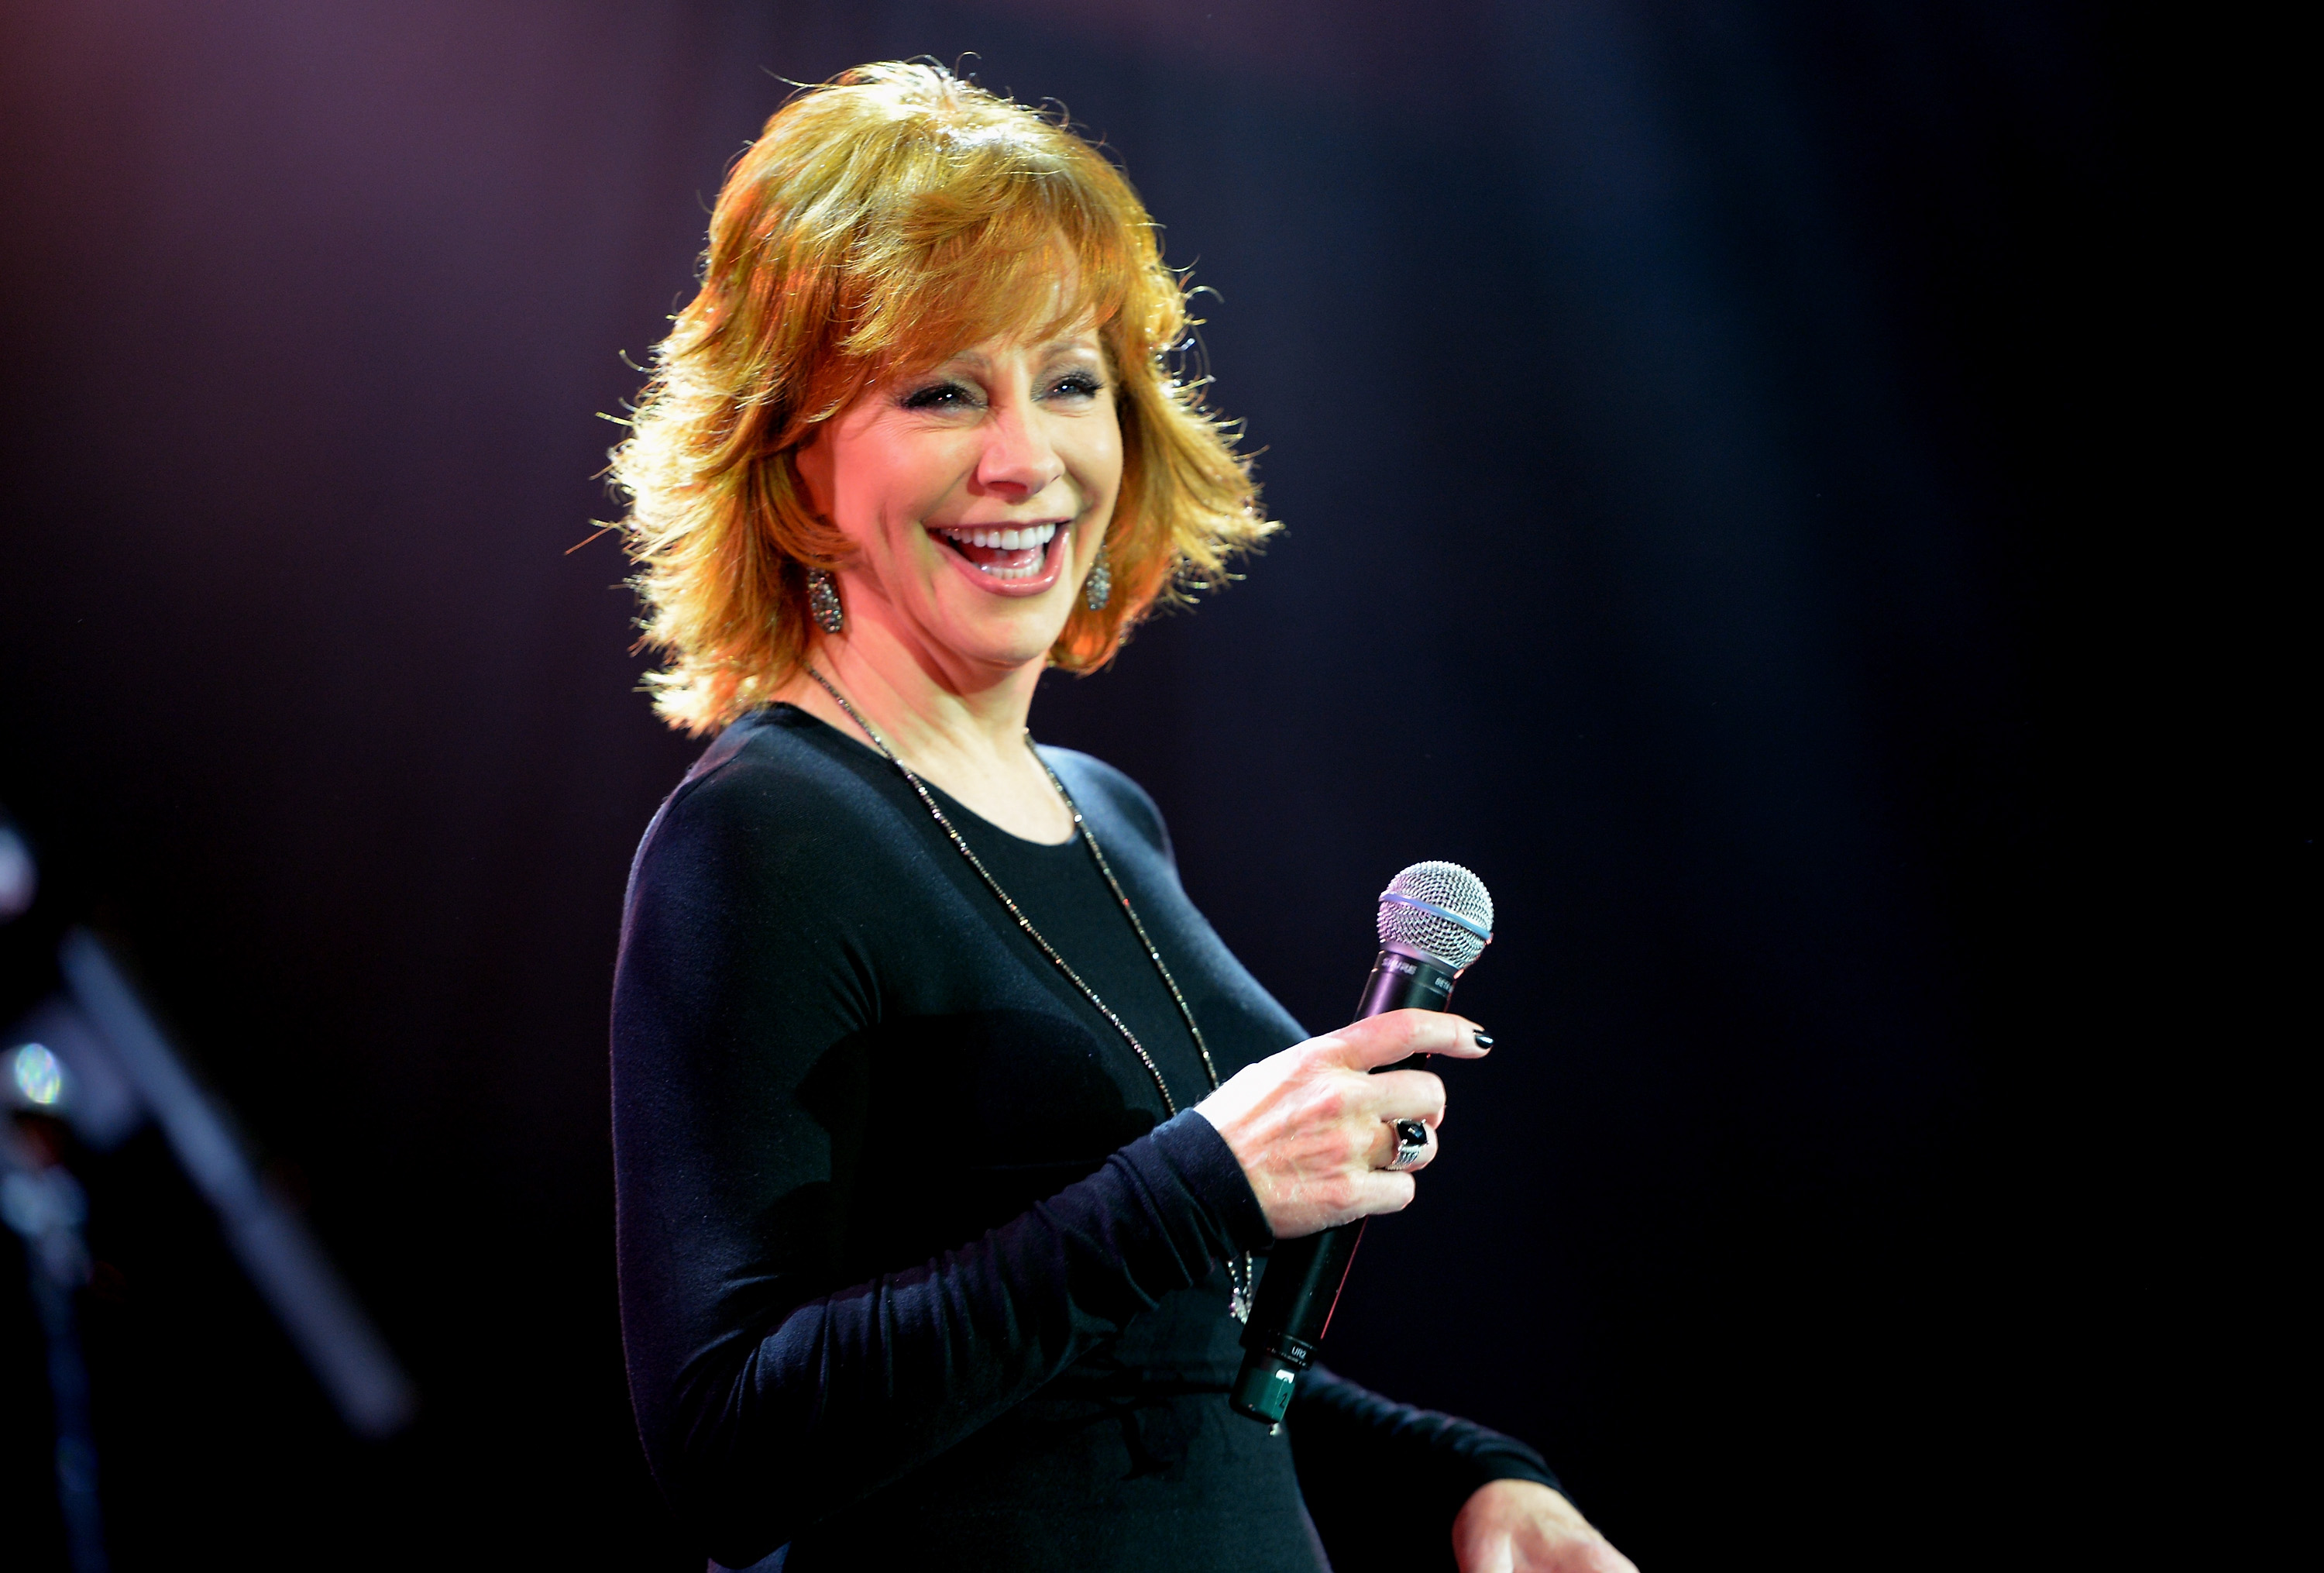 ABC Greenlights New Drama Series Pilot Starring Reba